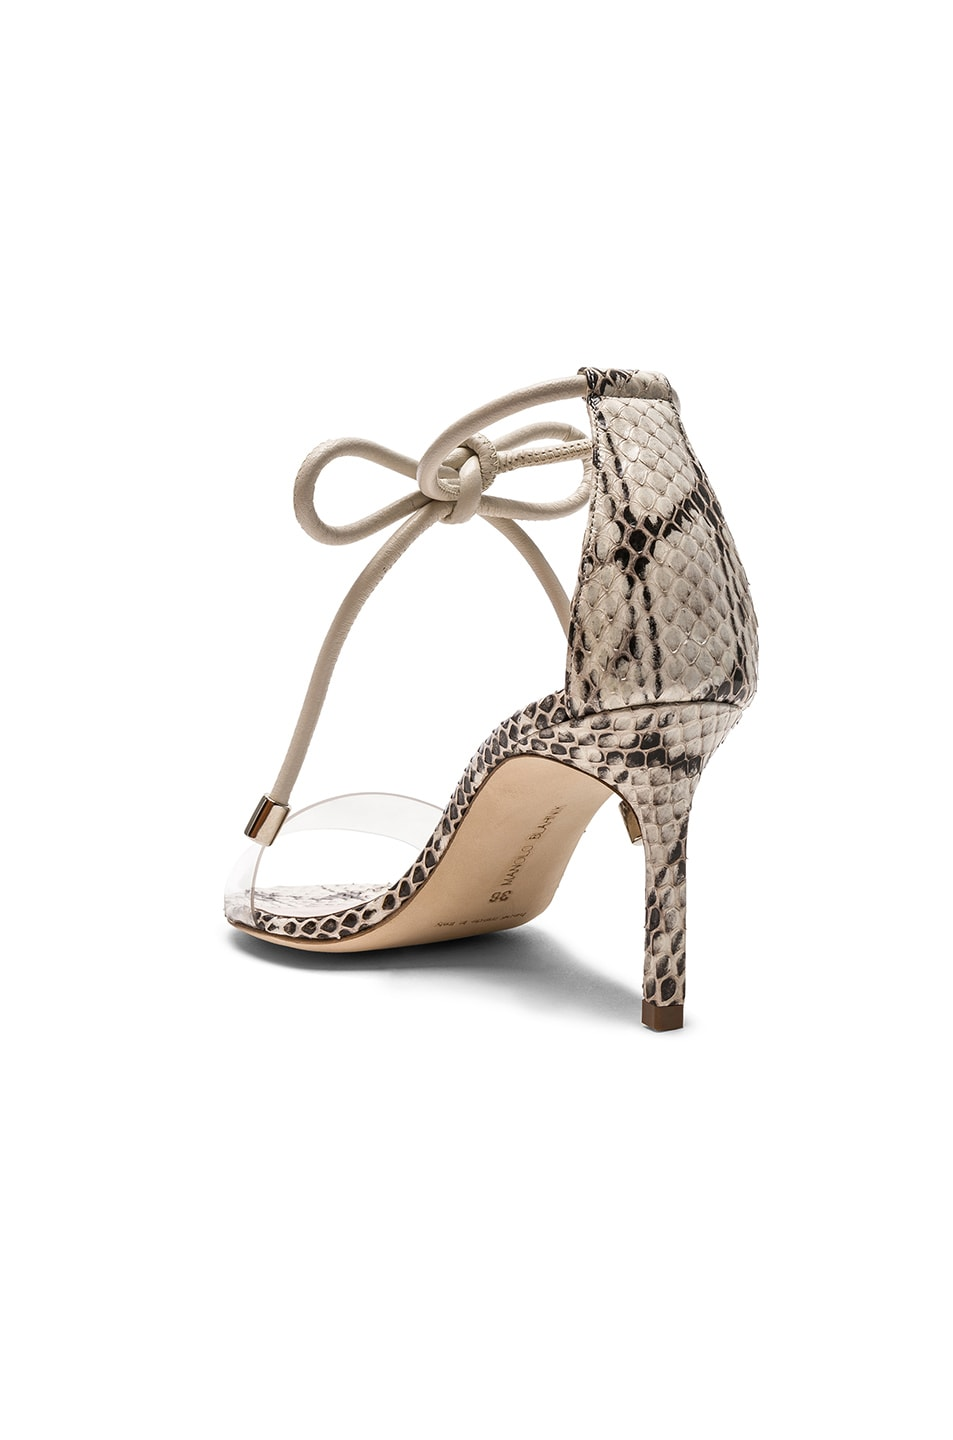 Image 3 of Manolo Blahnik Estro 70 Sandals in White & Black Natural Watersnake